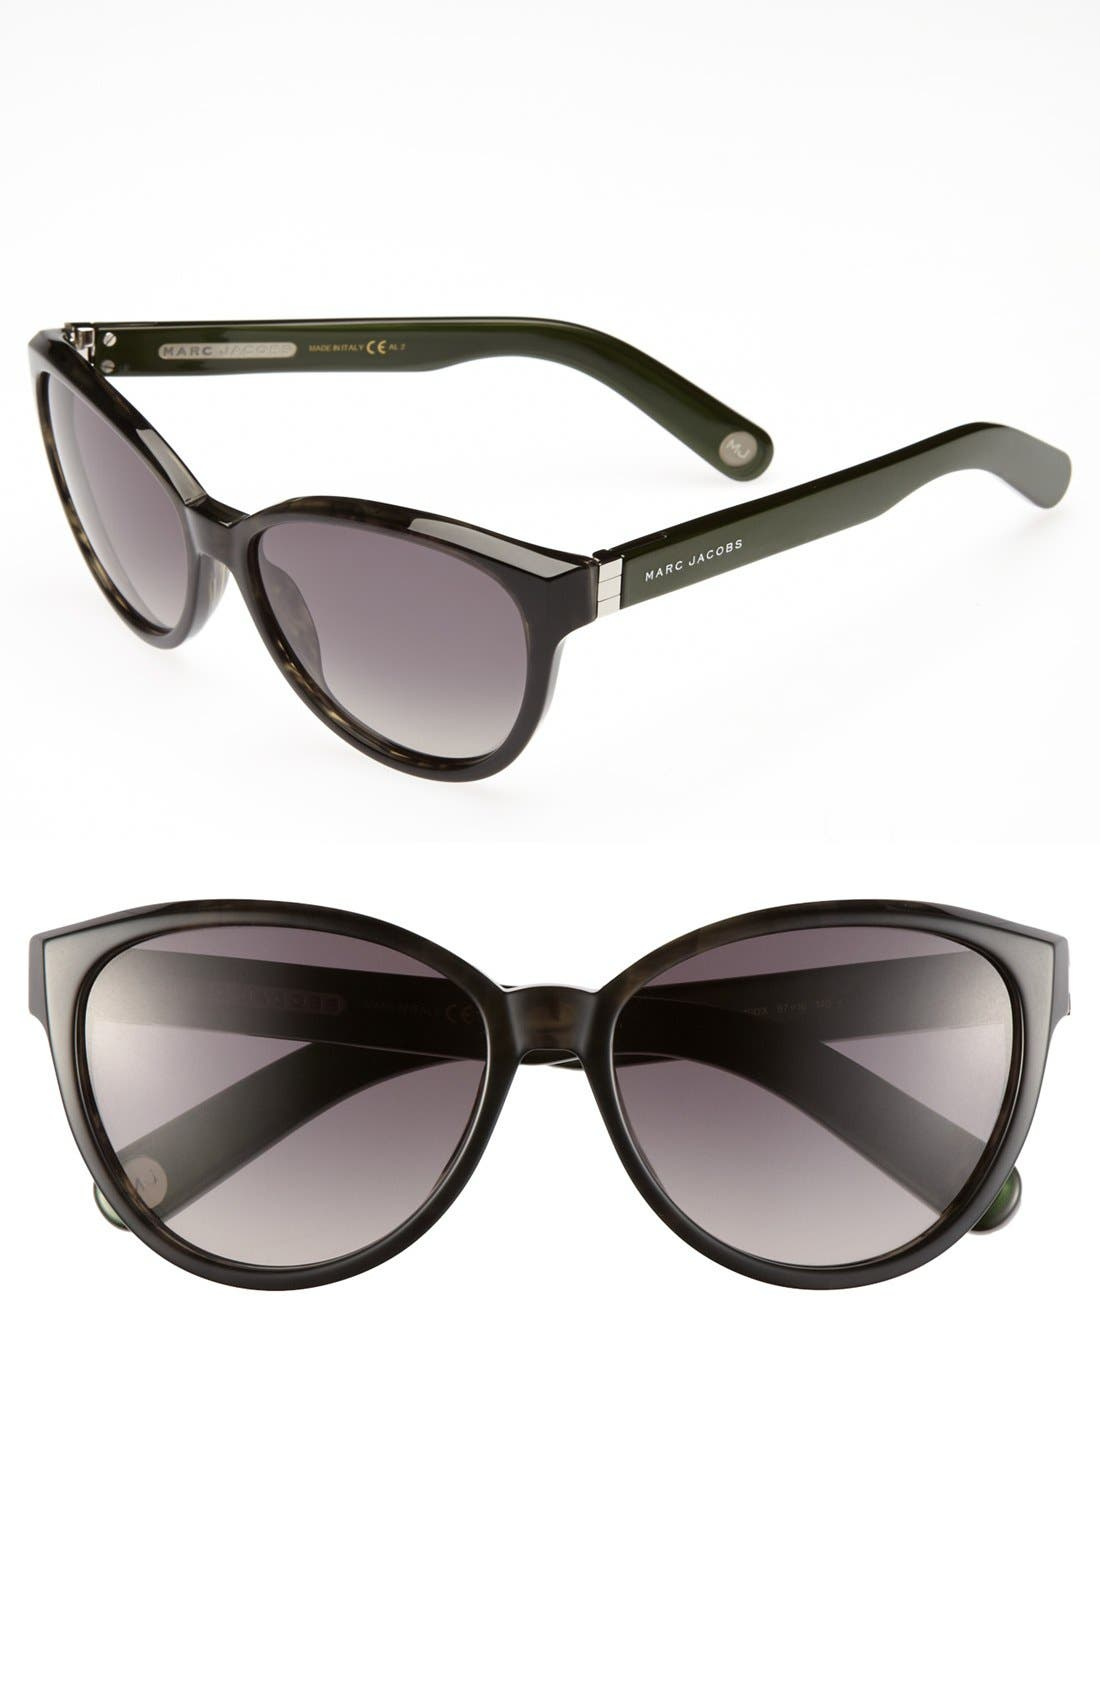 Main Image - MARC JACOBS 57mm Retro Sunglasses